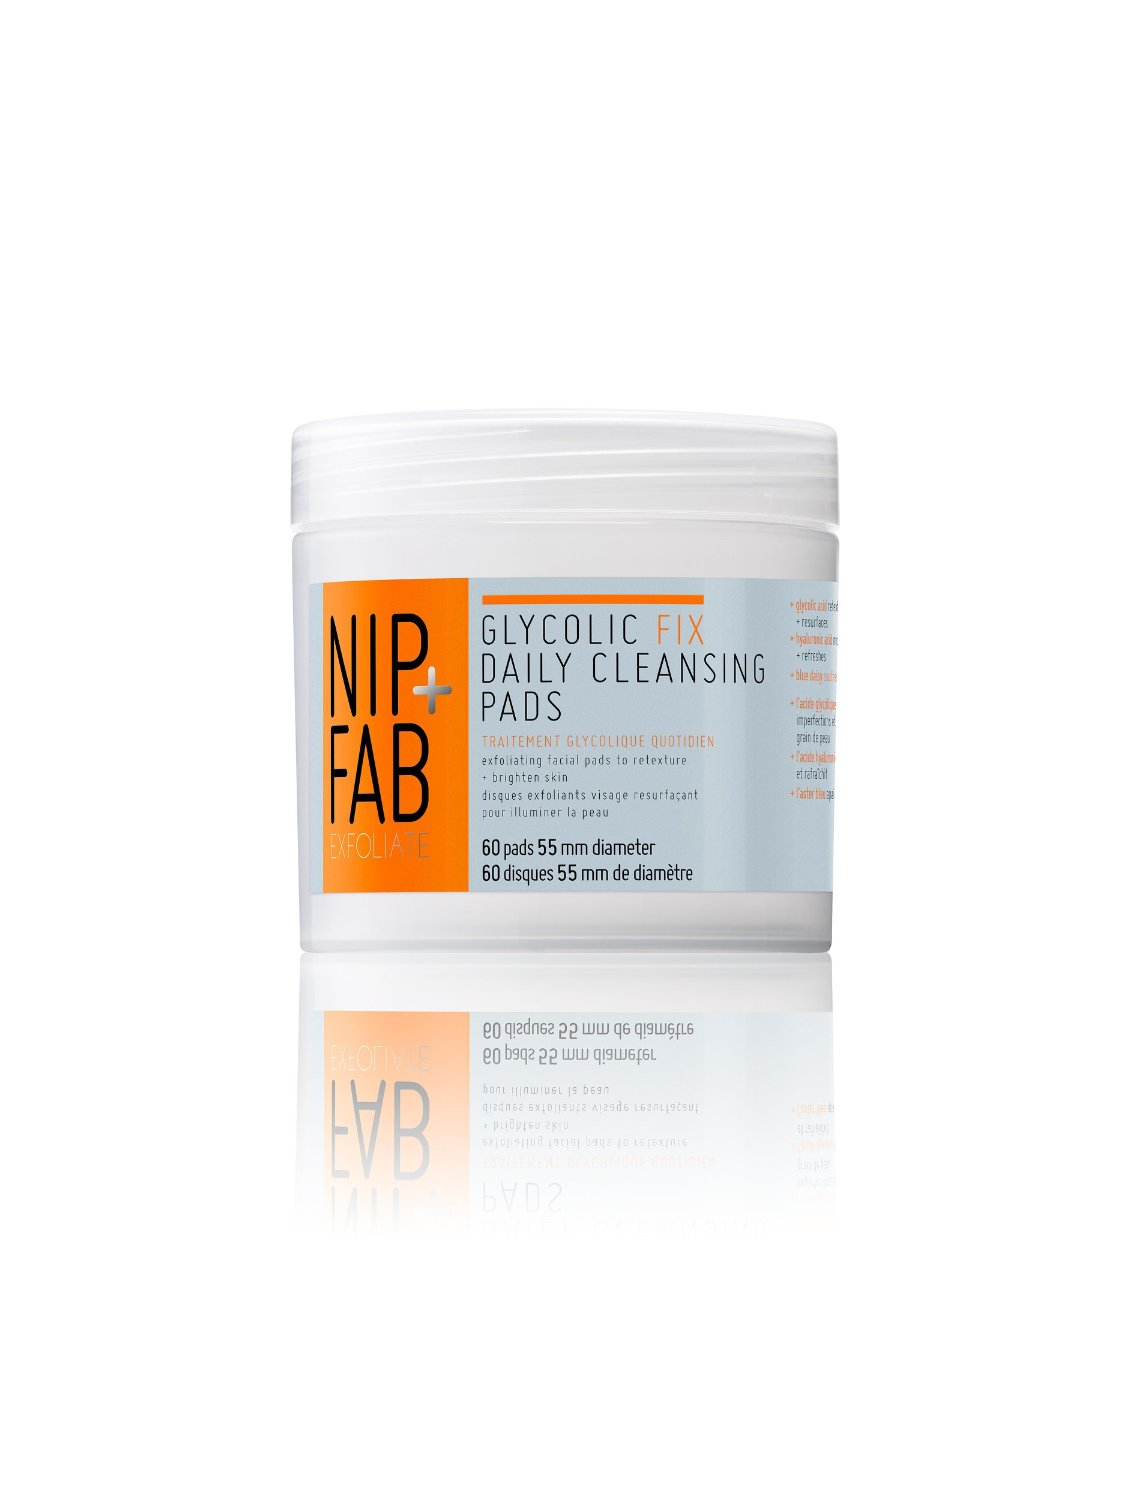 nip and fab cleansing pads photo